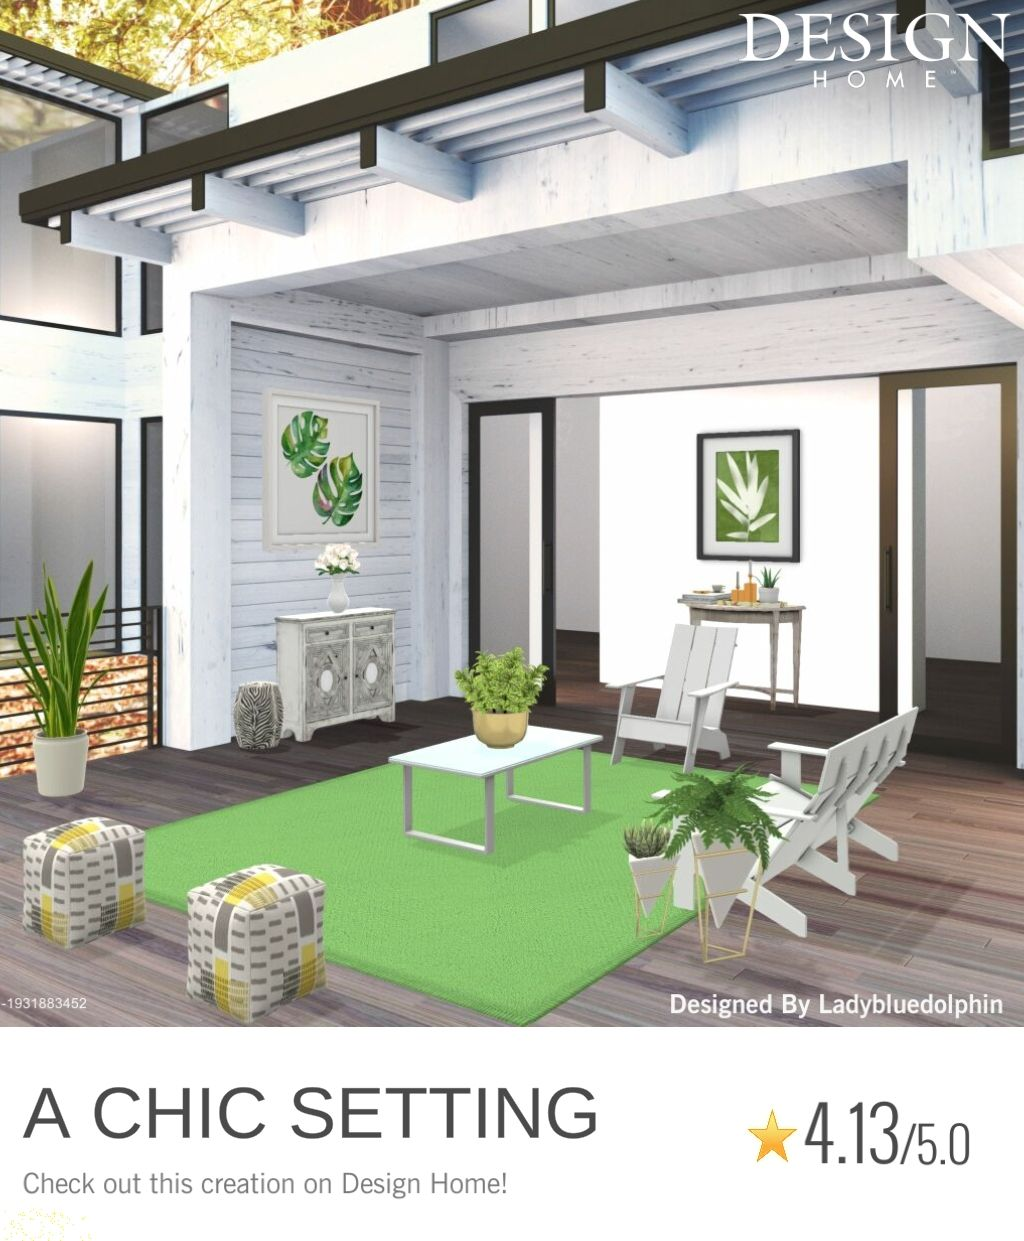 Pin By Lynn On Design Home Game In 2020 House Design Games House Design Home Decor